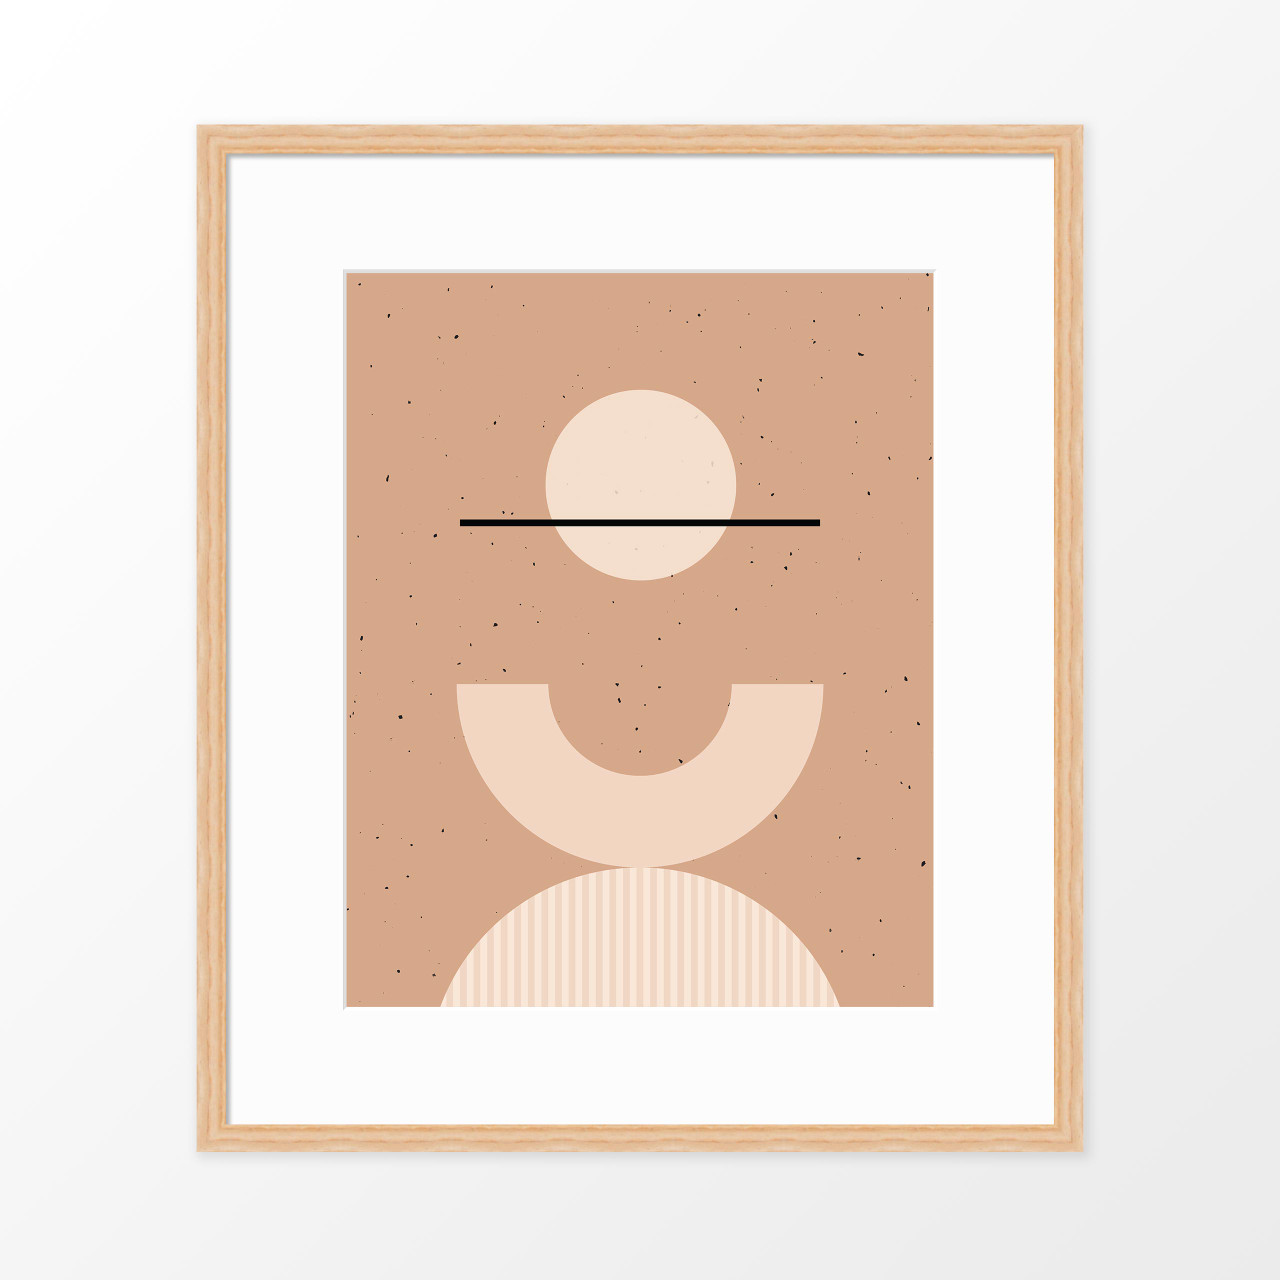 'Shapes + Flecks I' Minimalist Geometric Art Print from The Printed Home (Printable)